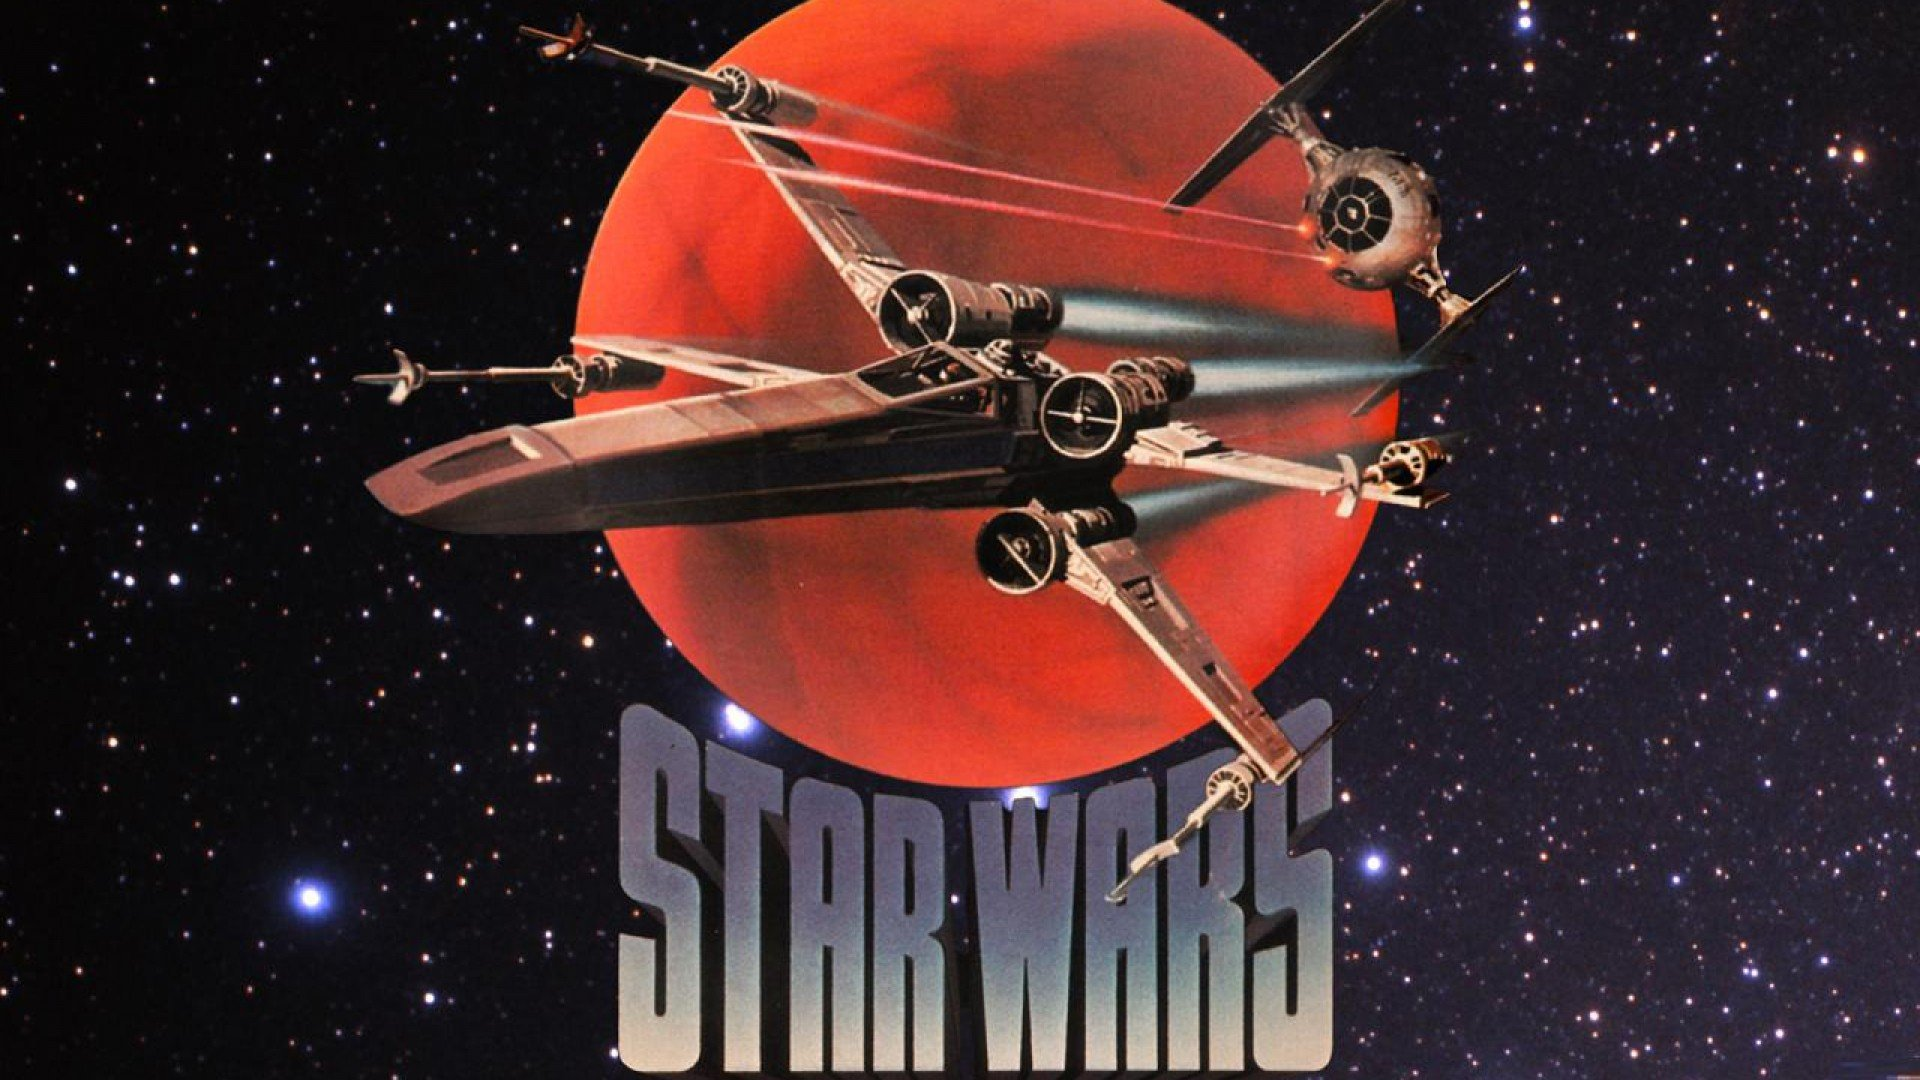 X Wing Fighter Wallpaper